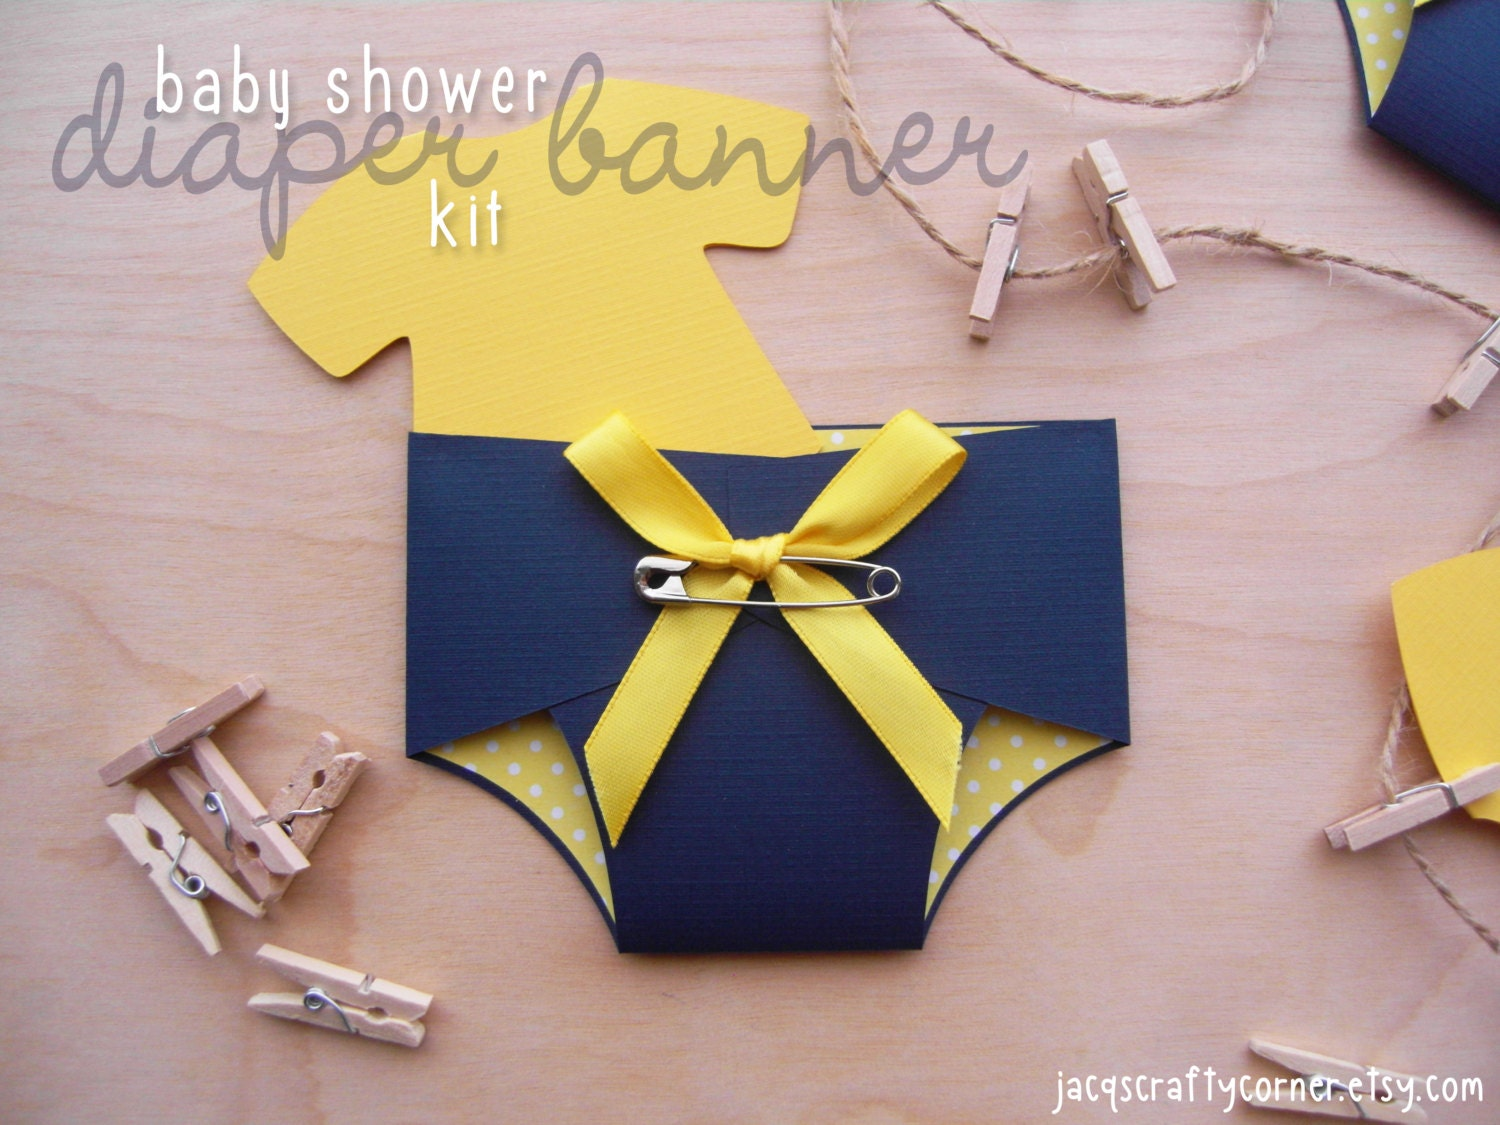 Baby shower diaper banner kit navy blue and by jacqscraftycorner